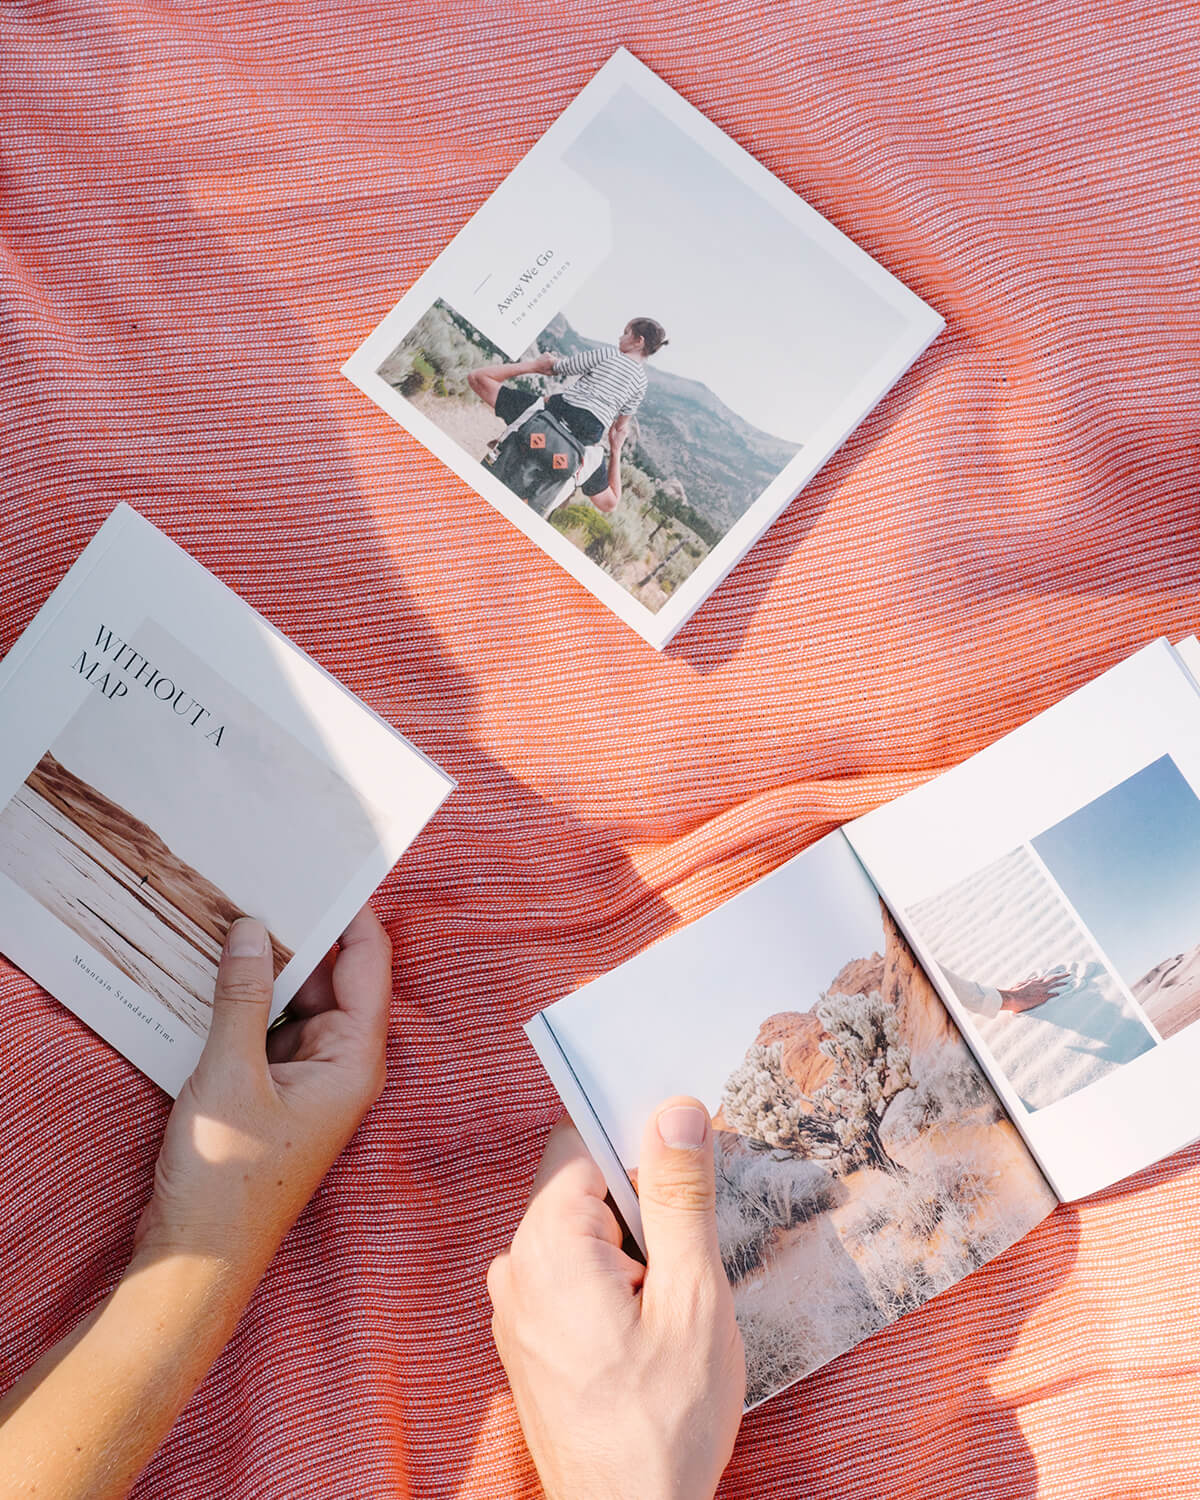 softcover photo book with travel photography